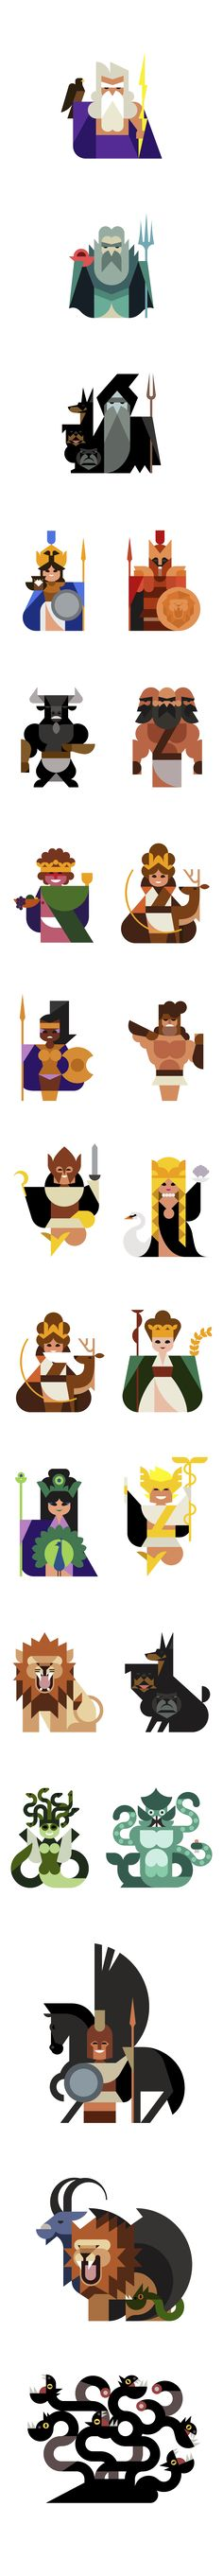 """The Oh my God Exhibition takes a geometric look at character design. In ancient Greece they had something better than superheroes; they had gods, each with their own powers, weaknesses, backstory and followers.  By """"Hey"""" on Behance http://www.behance.net/gallery/Oh-my-god/8977355"""